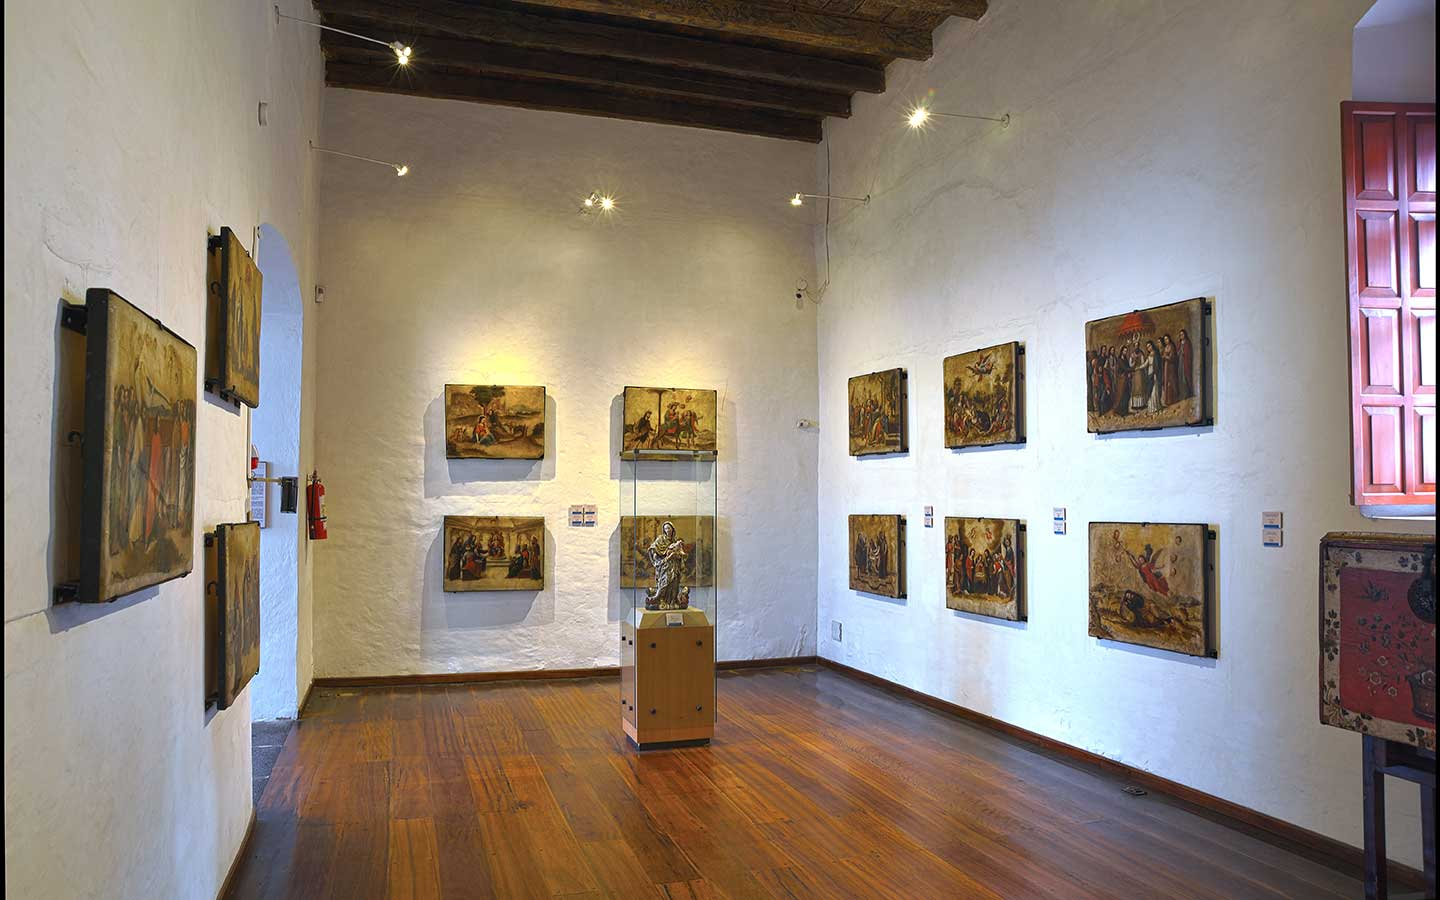 An art display in an art museum of Quito